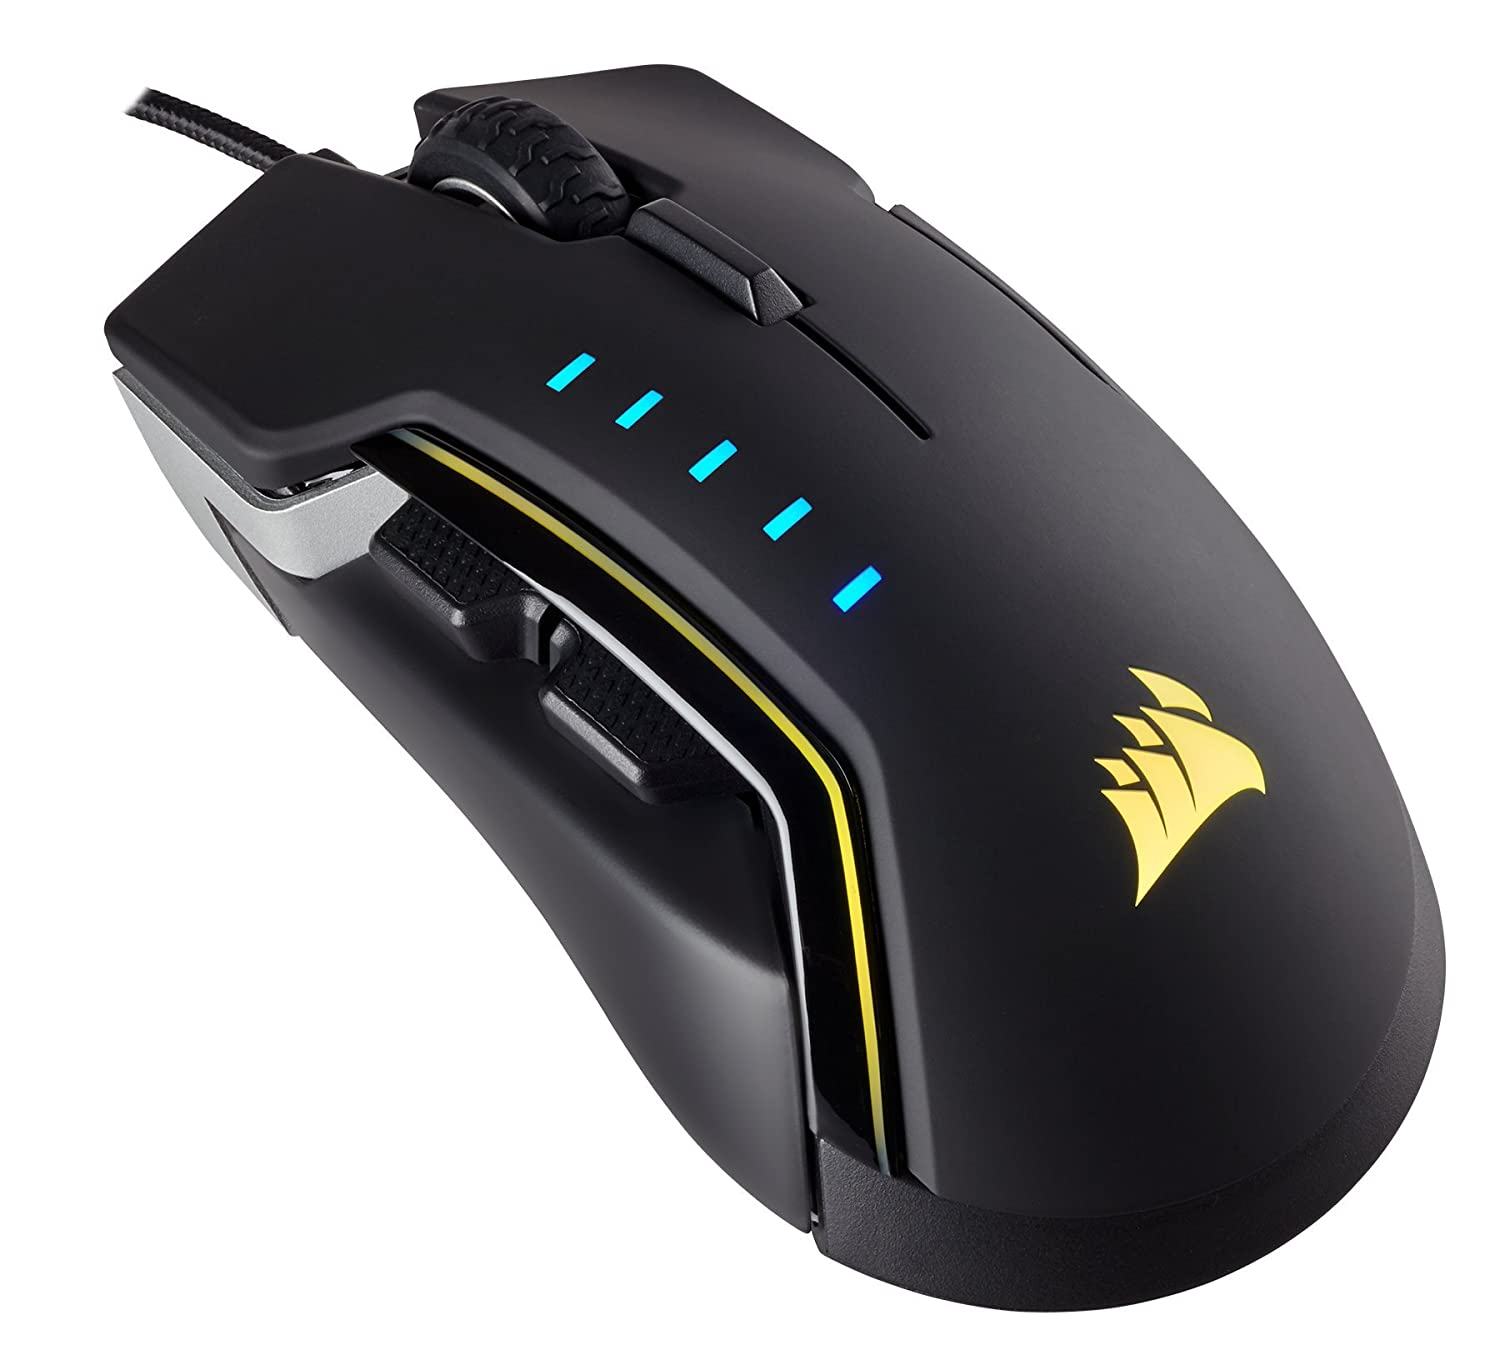 Amazon CORSAIR Glaive RGB Gaming Mouse fortable & Ergonomic Interchangeable Grips DPI Optical Sensor Aluminum puters &